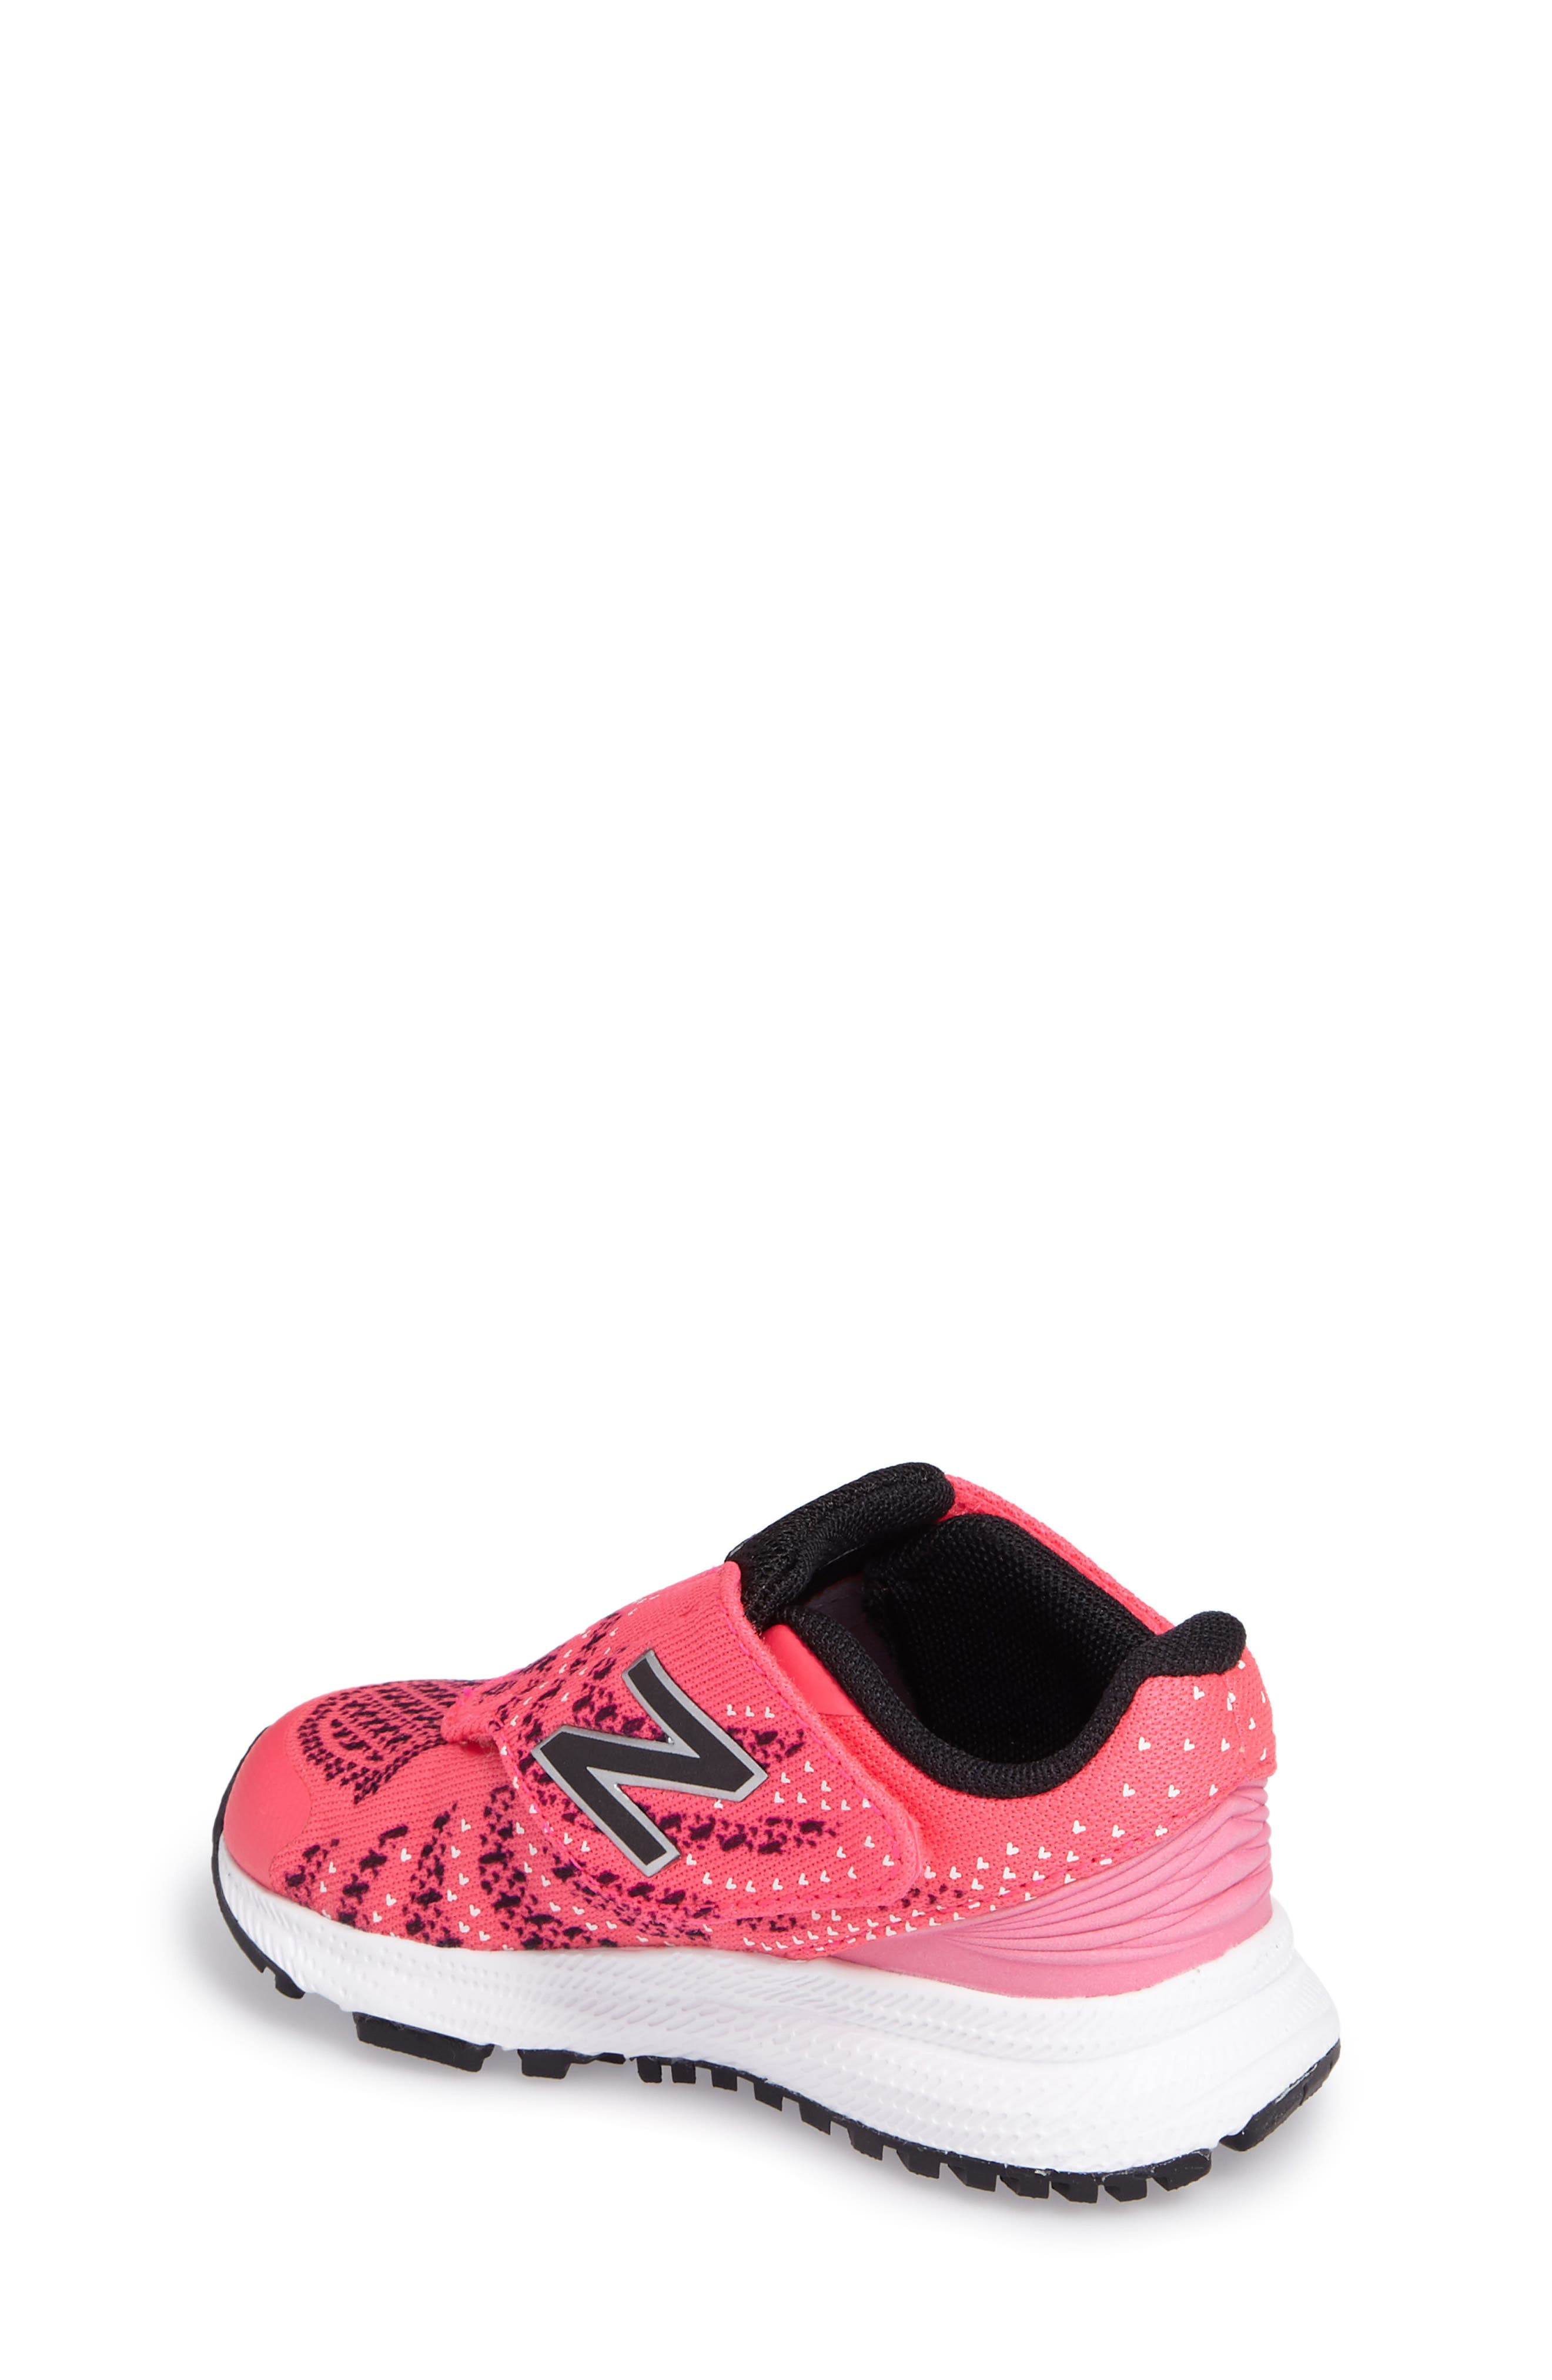 FuelCore Rush v3 Knit Sneaker,                             Alternate thumbnail 2, color,                             Pink